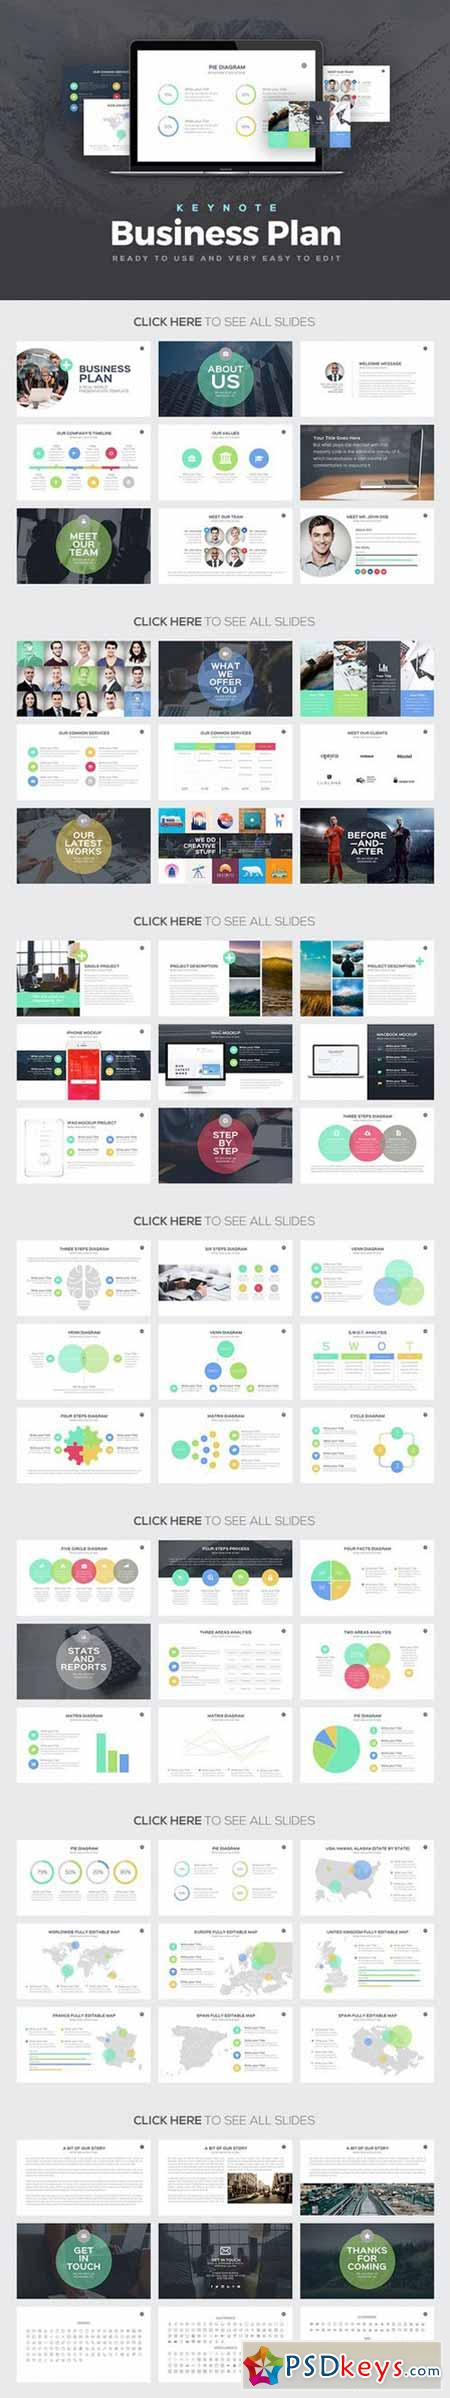 Business Plan Keynote Template Free Download Photoshop - Keynote business plan template